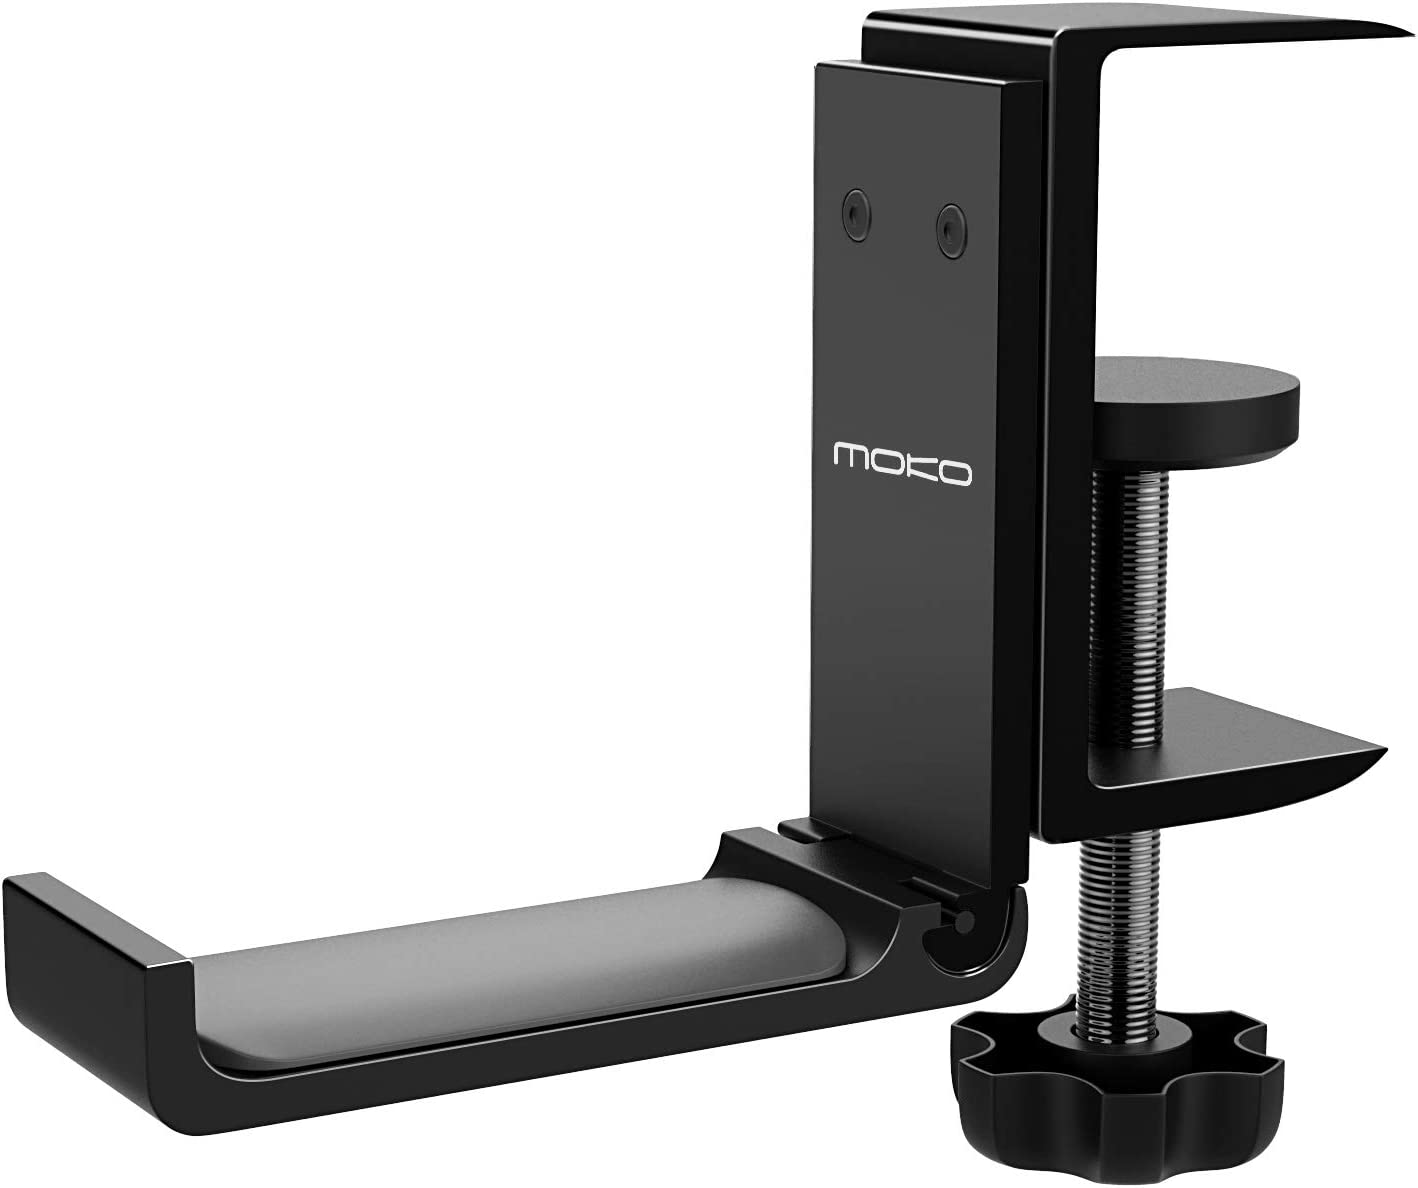 MoKo Headphone Stand, Universal Aluminum Headphone Foldable Hanger Adjustable Headset Stand Clamp Mount Desk Hook Holder for All Headphone Sizes, Sennheiser, Audio-Technica, Gaming Headphones - Black